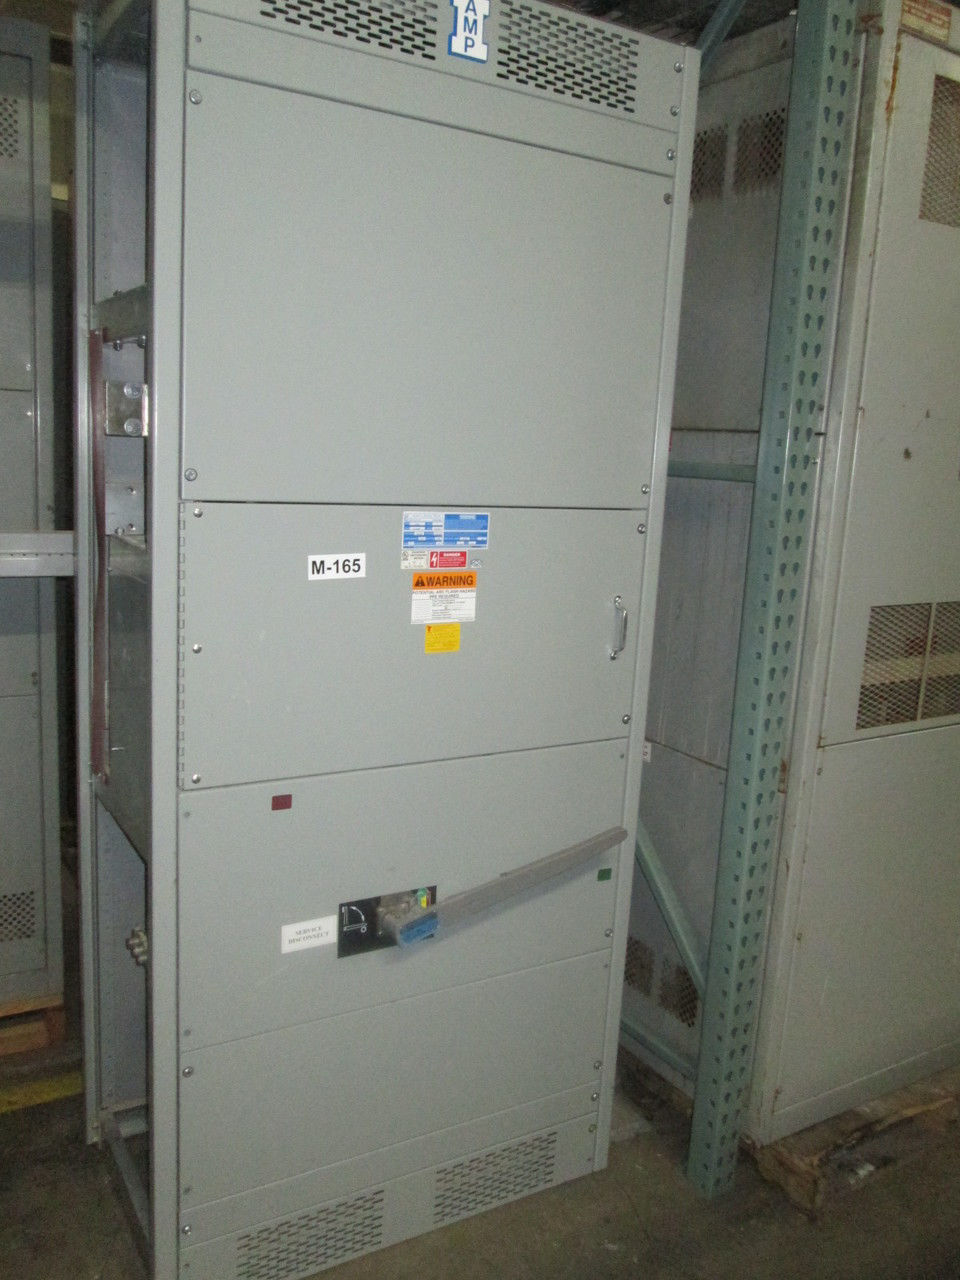 Picture of AMP 2000A 120/240V 1PH 3W Boltswitch VLB2410 Main Fusible Switch NEMA 1 (M-165)